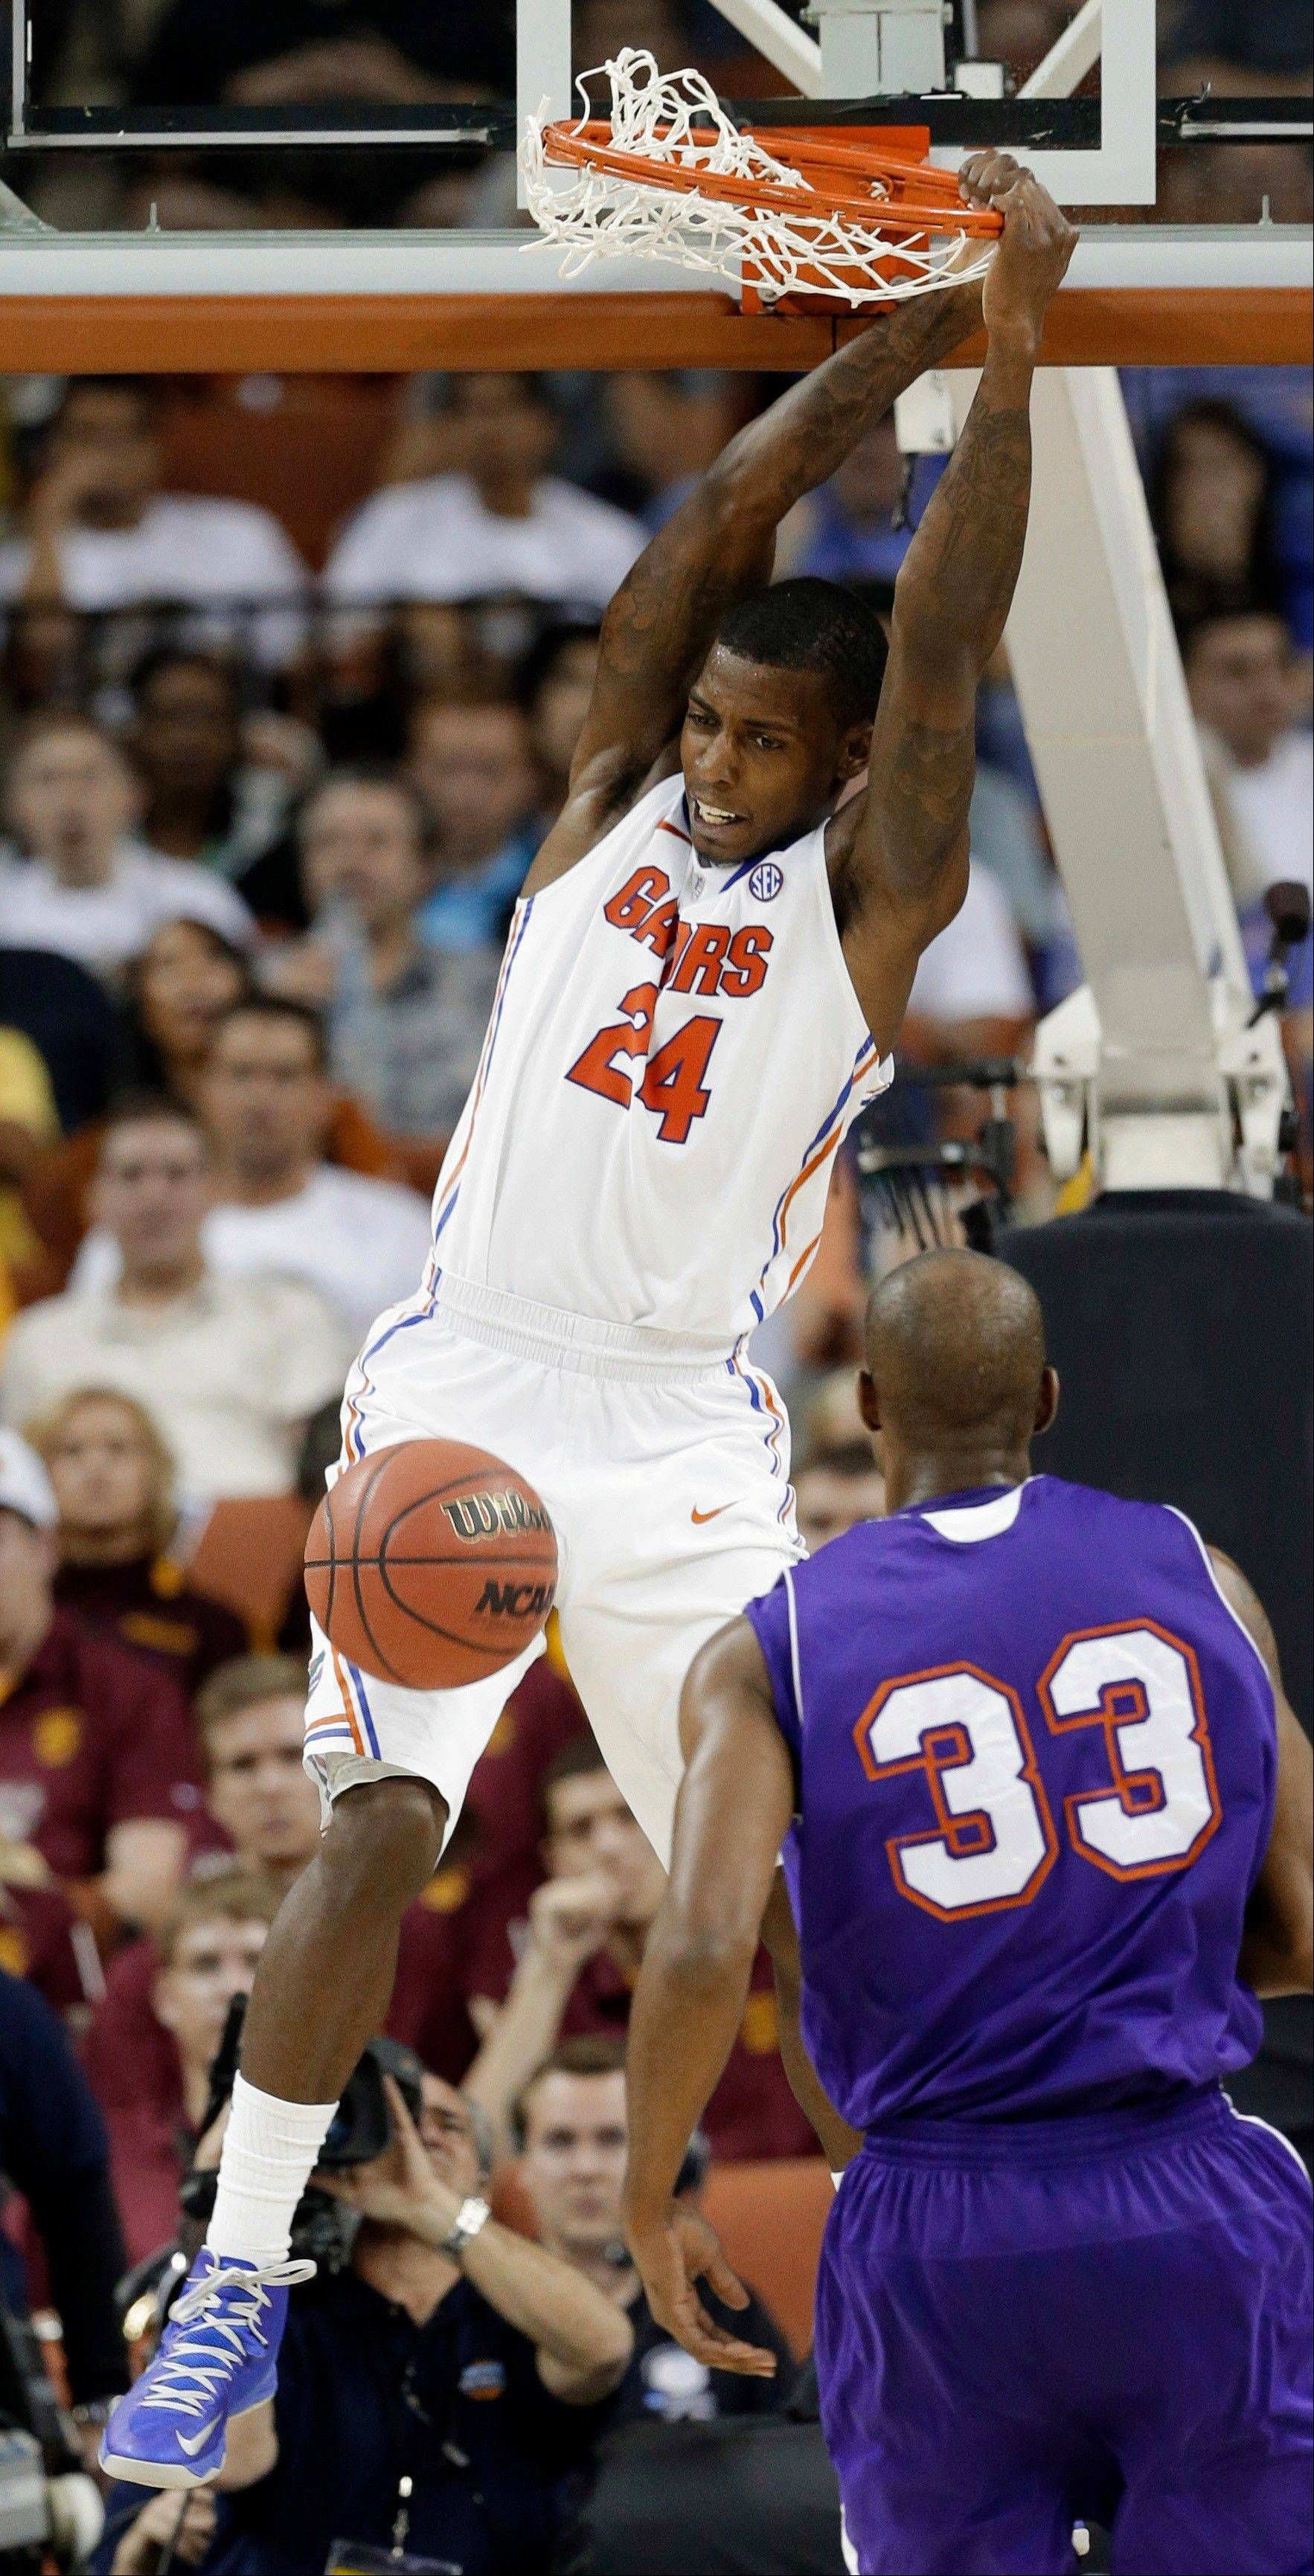 Florida's Casey Prather (24) hangs on the rim after dunkingas Northwestern State's James Hulbin (33) watches during the second half of a second-round game of the NCAA men's college basketball tournament Friday, March 22, 2013, in Austin, Texas. Florida won 79-47.